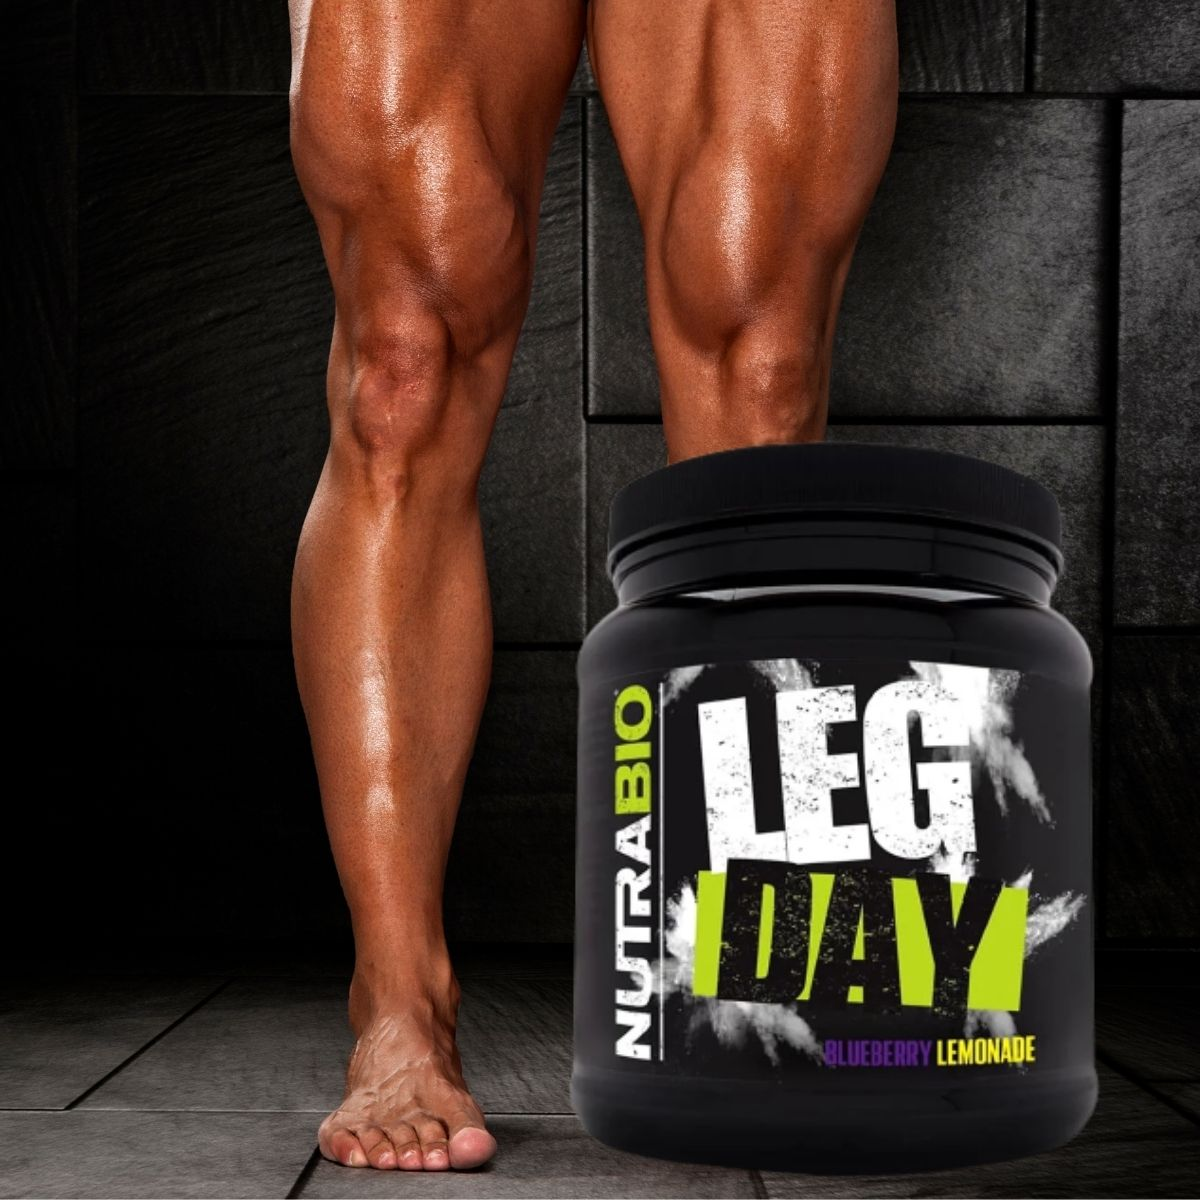 NutraBio Launches a New Supplement Called Leg Day